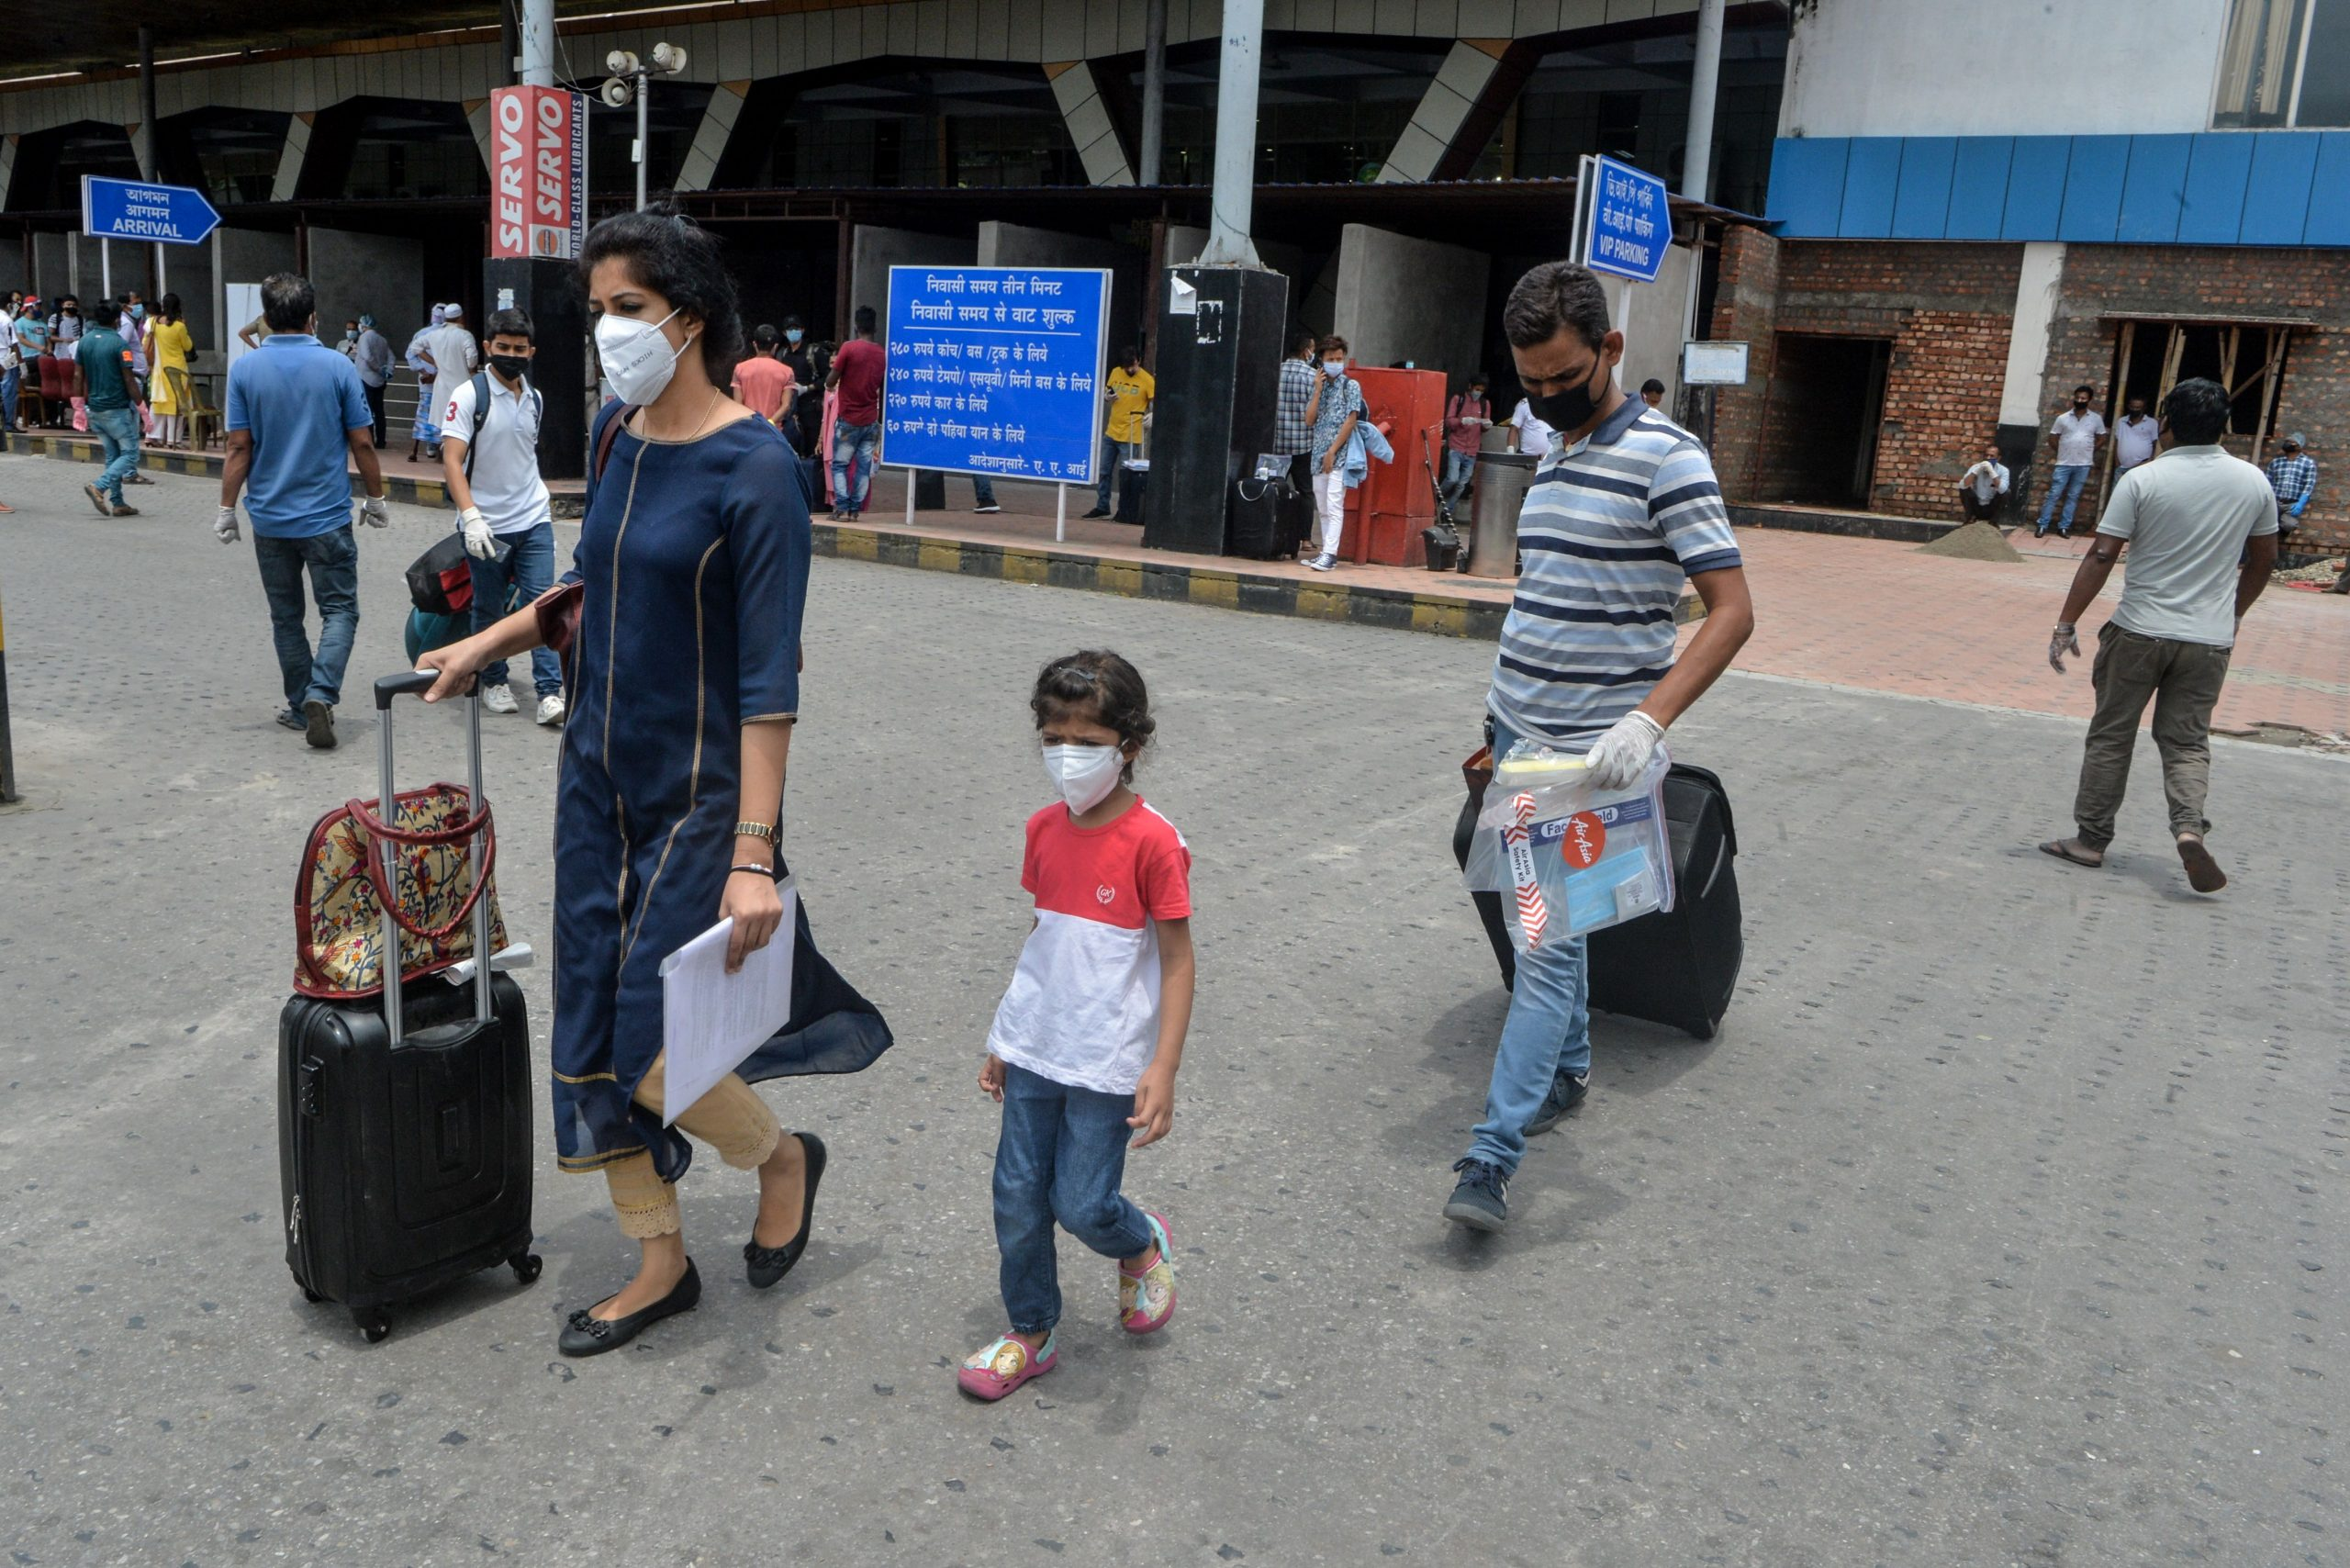 Arriving passengers wearing facemasks leave carrying their luggage at Bagdogra airport after the goverment eased a nationwide lockdown imposed as a preventive measure against the COVID-19 coronavirus, on the outskirts of Siliguri on May 28, 2020. - Domestic air travel will resume in India on May 25 and in West Bengal on May 28 after a two-month shutdown over the coronavirus pandemic. (Photo by DIPTENDU DUTTA / AFP) (Photo by DIPTENDU DUTTA/AFP via Getty Images)